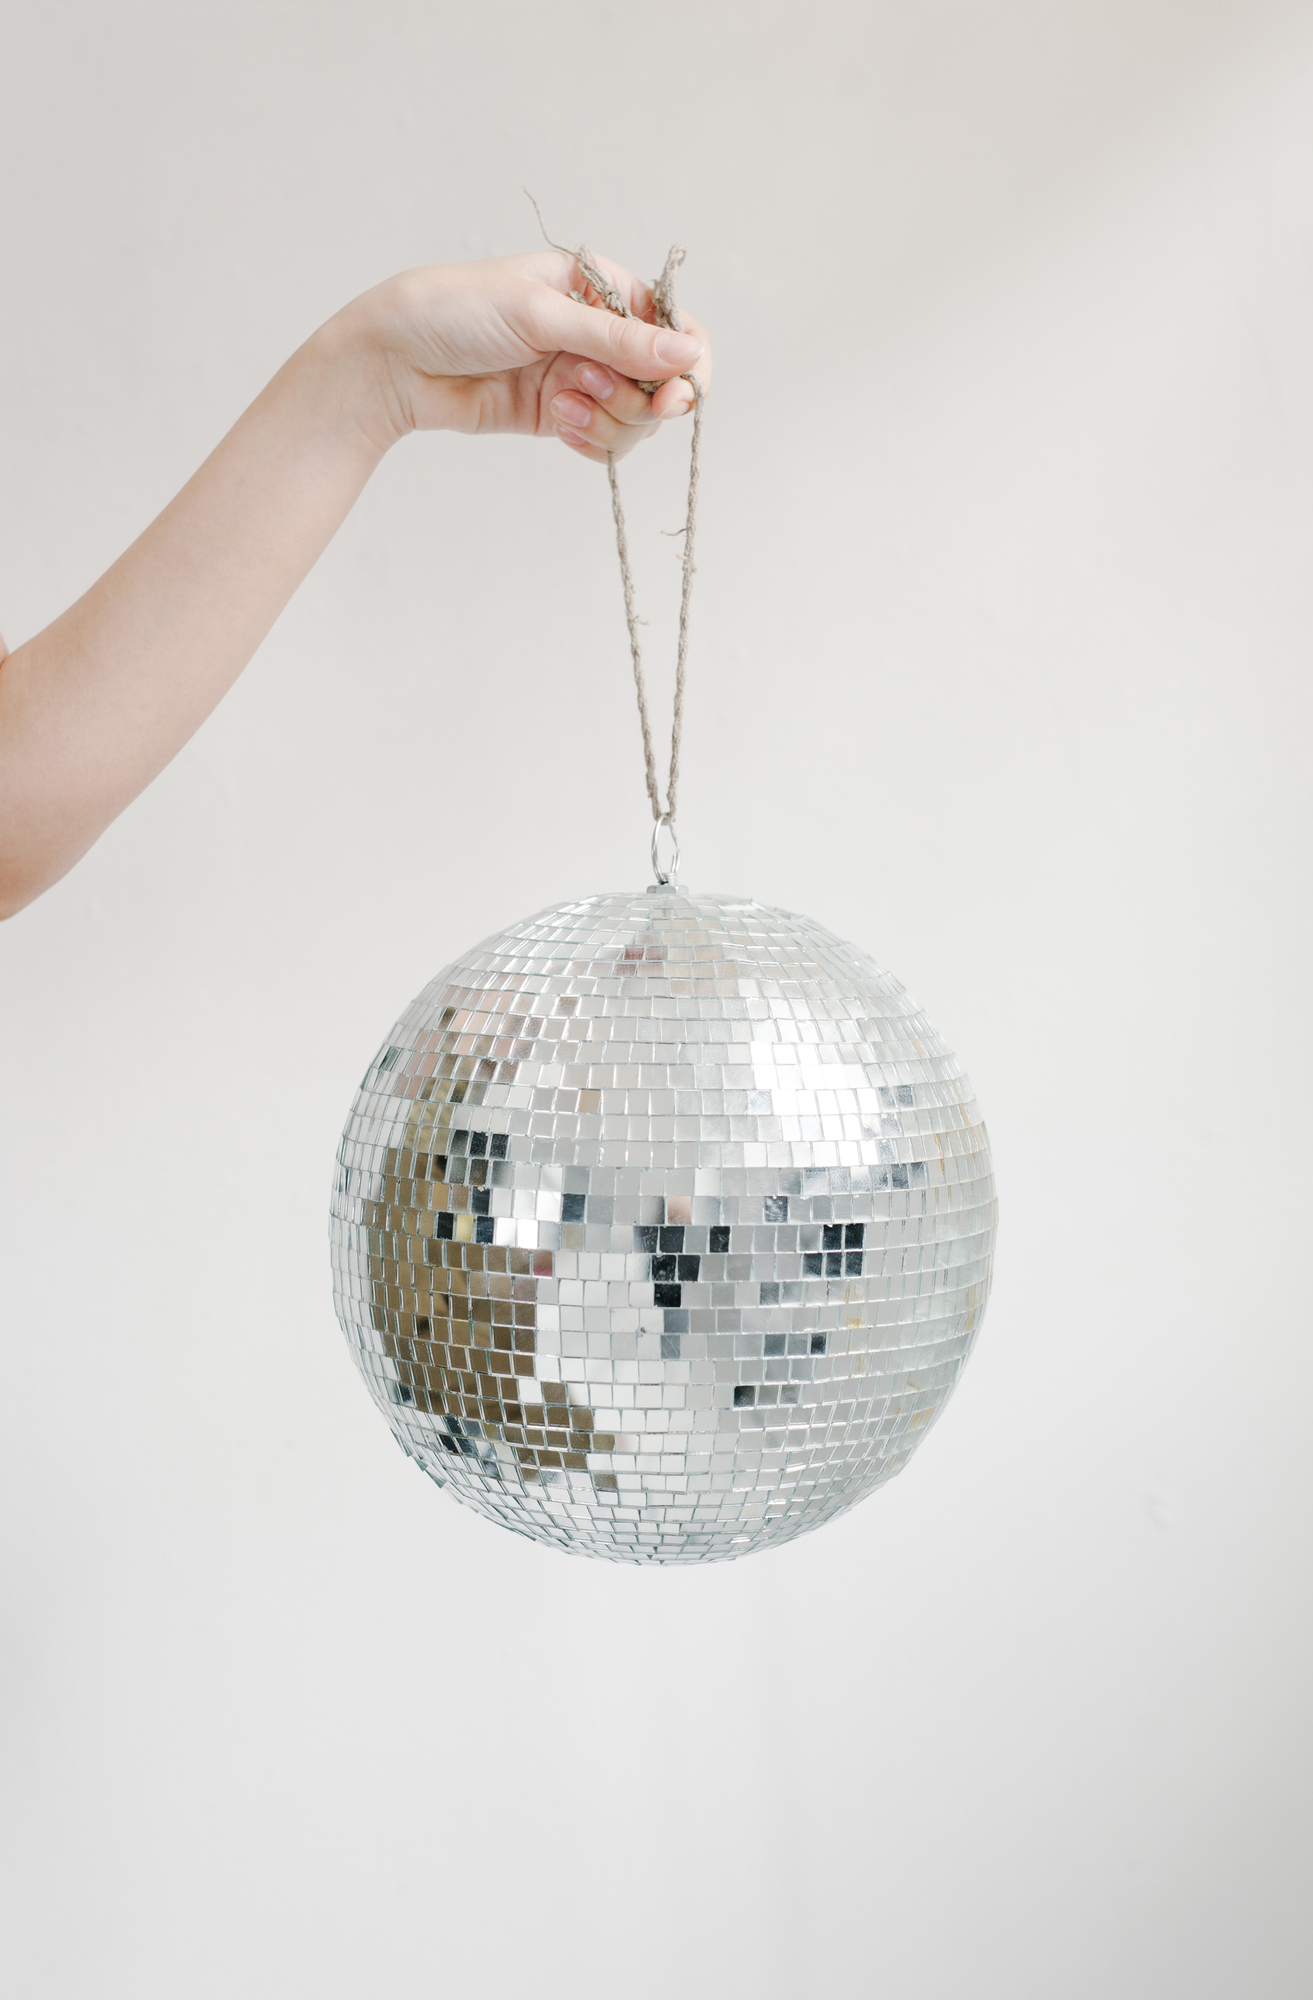 Girl holding a small disco ball